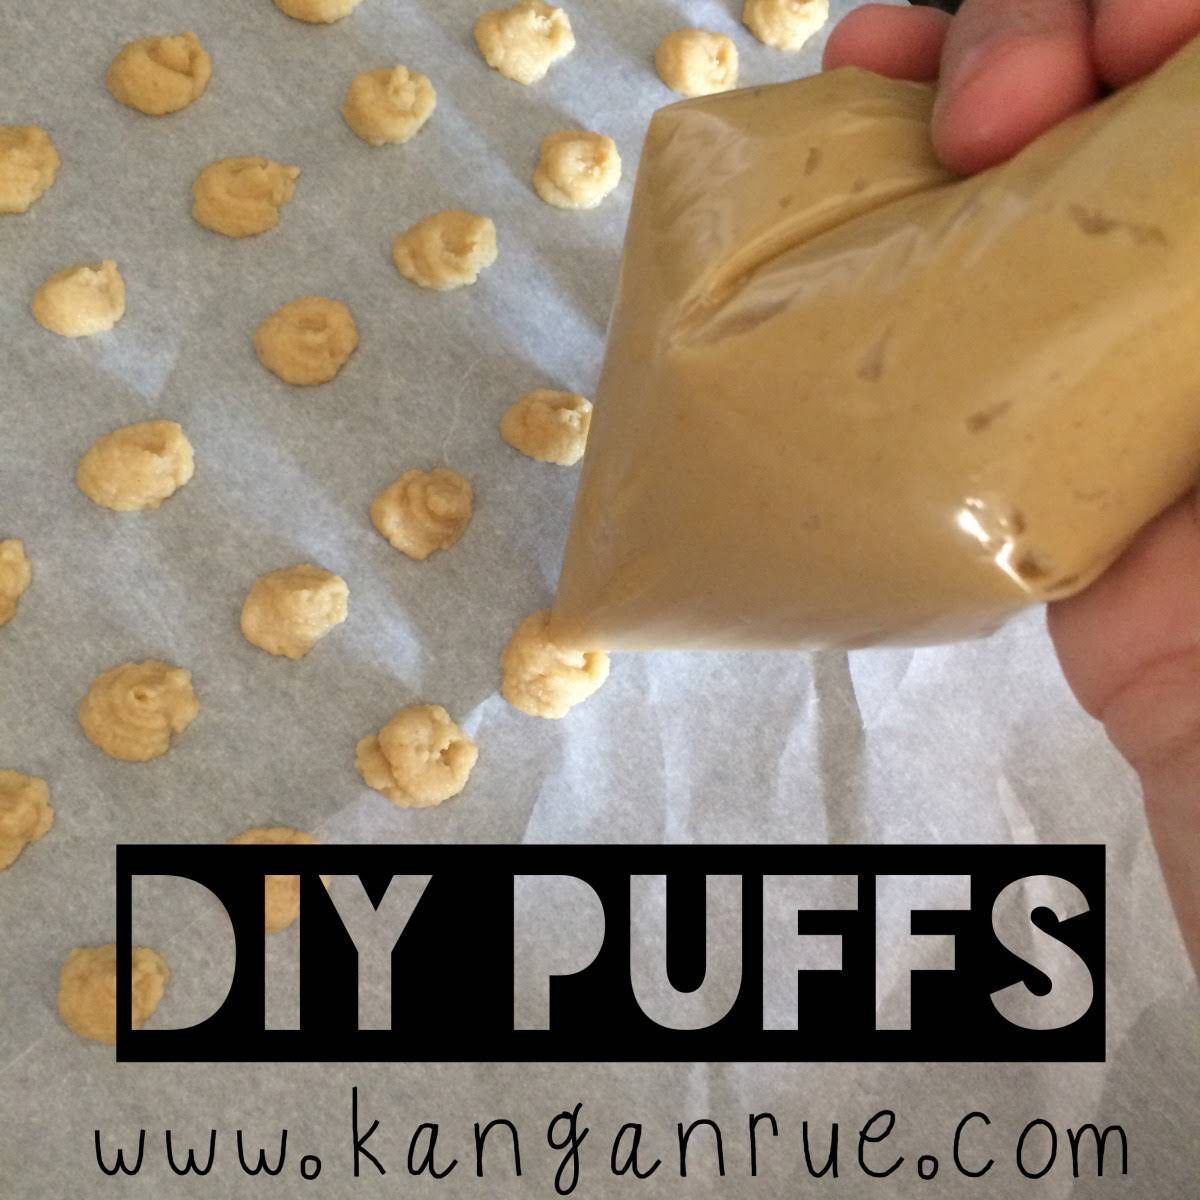 Diy Baby Puffs With Rice Cereal, Coconut Oil, Apple Sauce